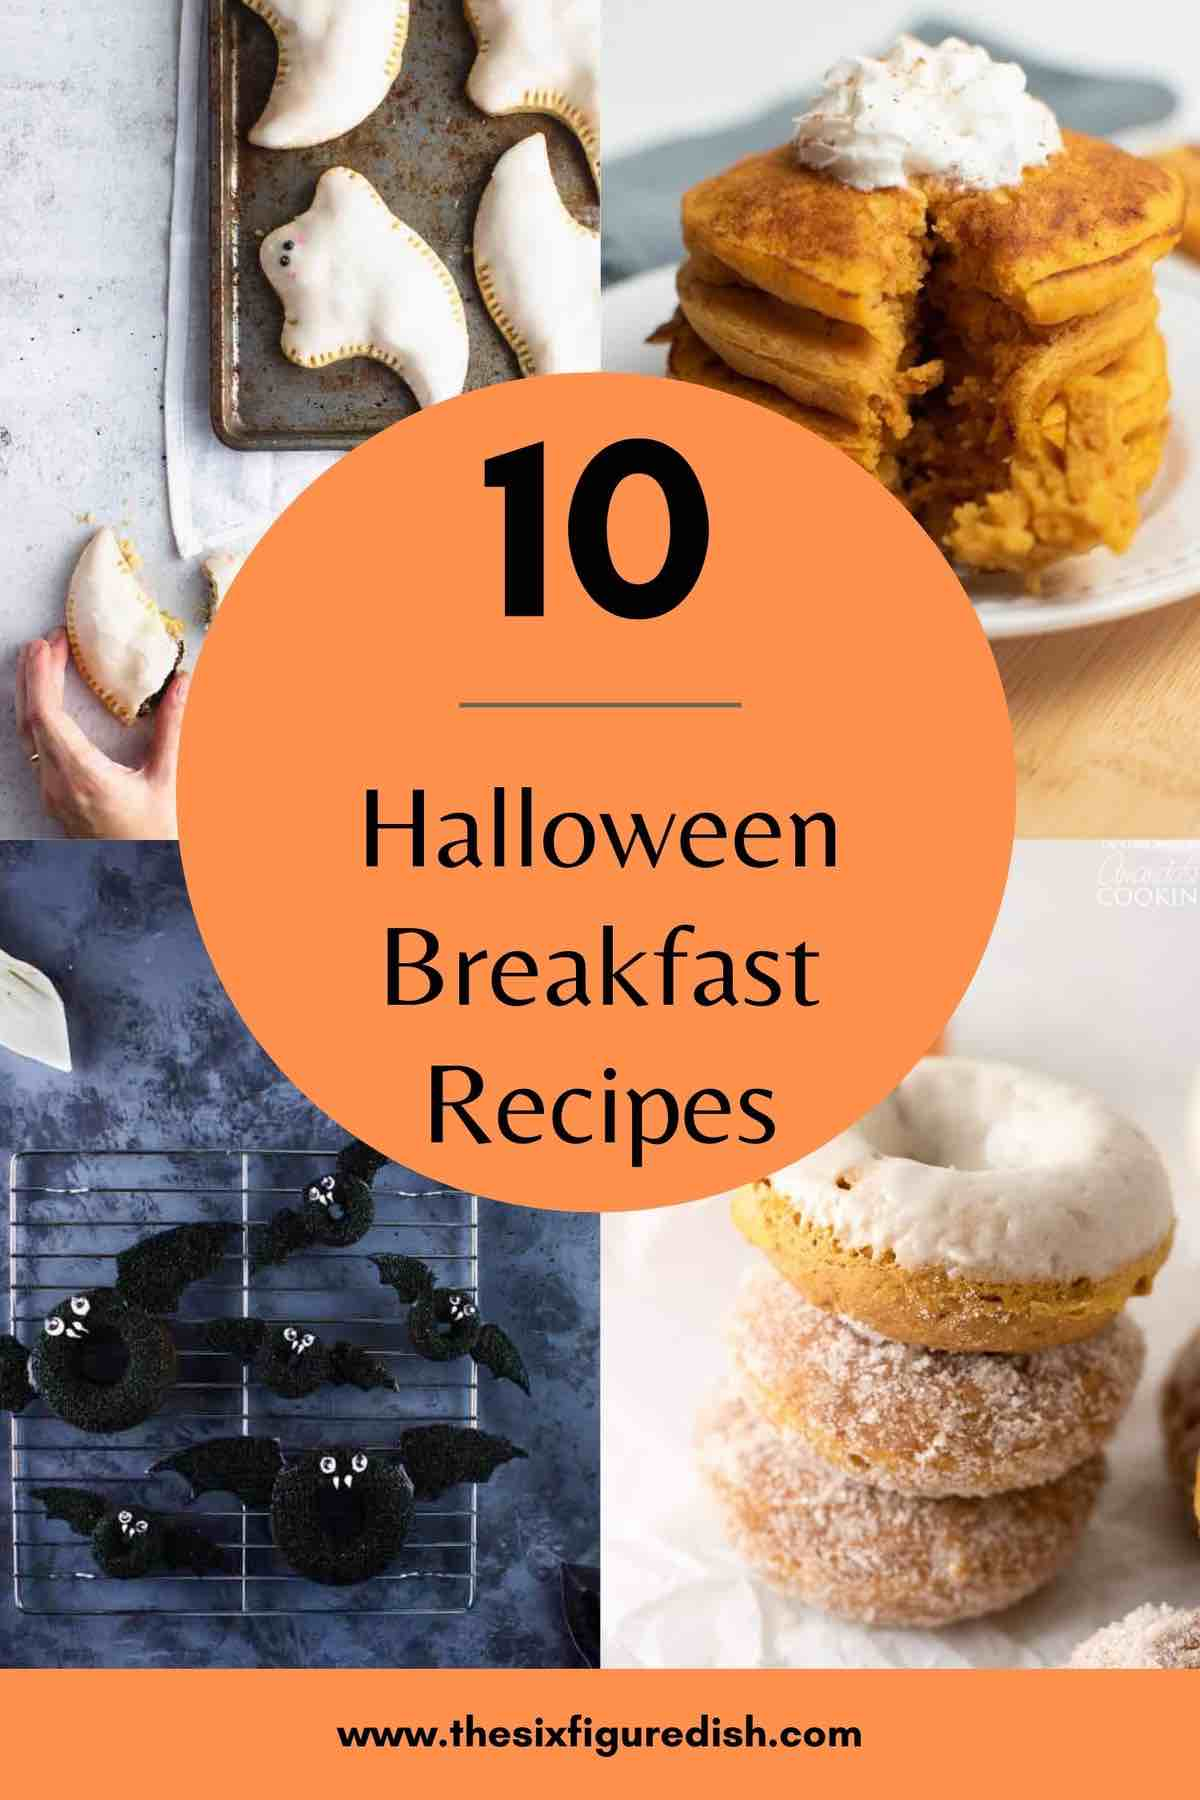 10 Halloween breakfast recipes round up collection.